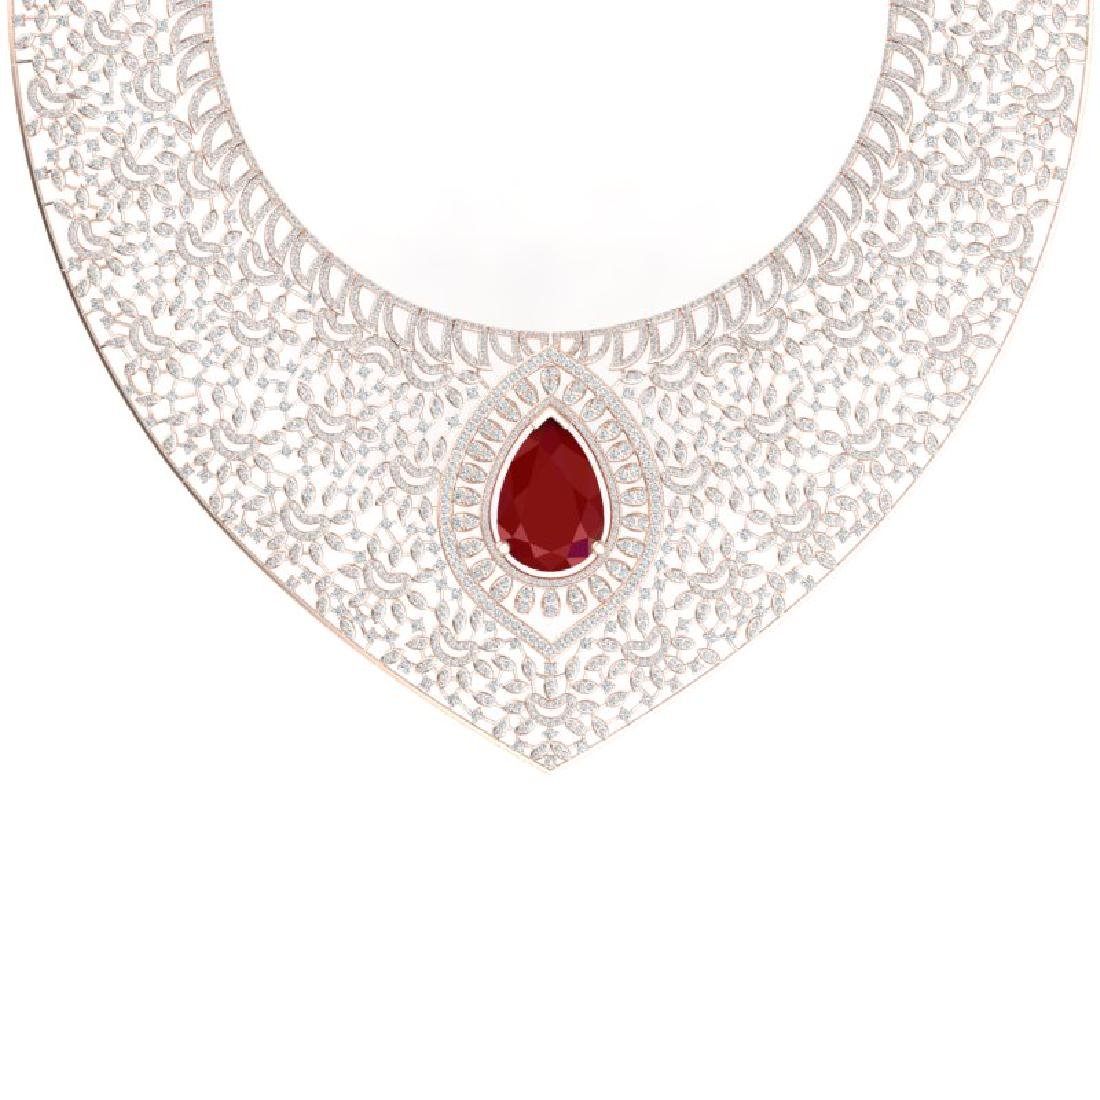 63.93 CTW Royalty Ruby & VS Diamond Necklace 18K Rose - 2